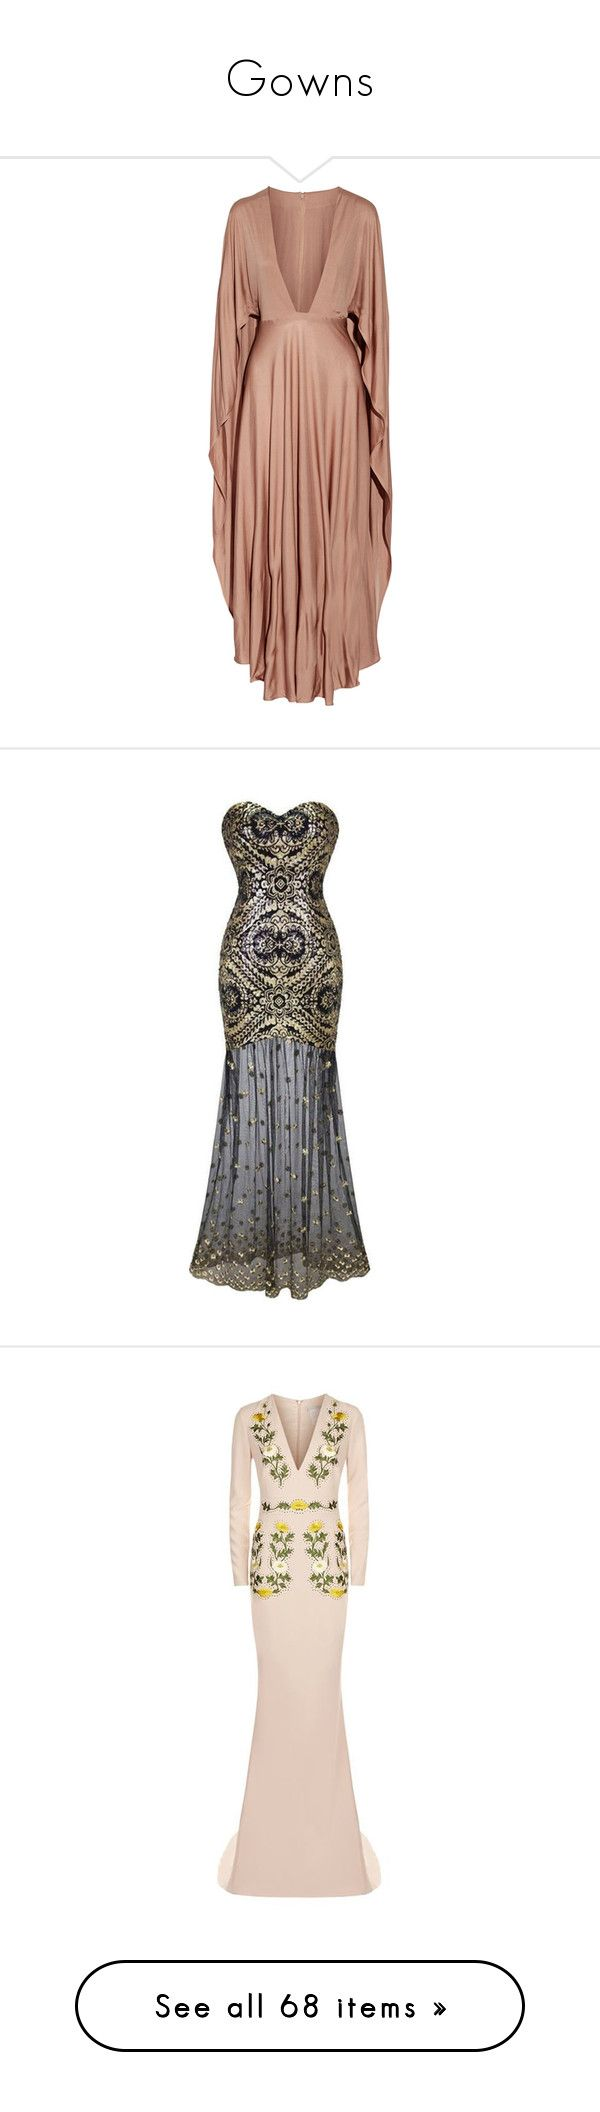 """""""Gowns"""" by purplehazexxx ❤ liked on Polyvore featuring dresses, gowns, vestidos, valentino, valentino dress, beige evening dress, beige gown, plunging neckline maxi dress, valentino evening gowns and holiday party dresses"""